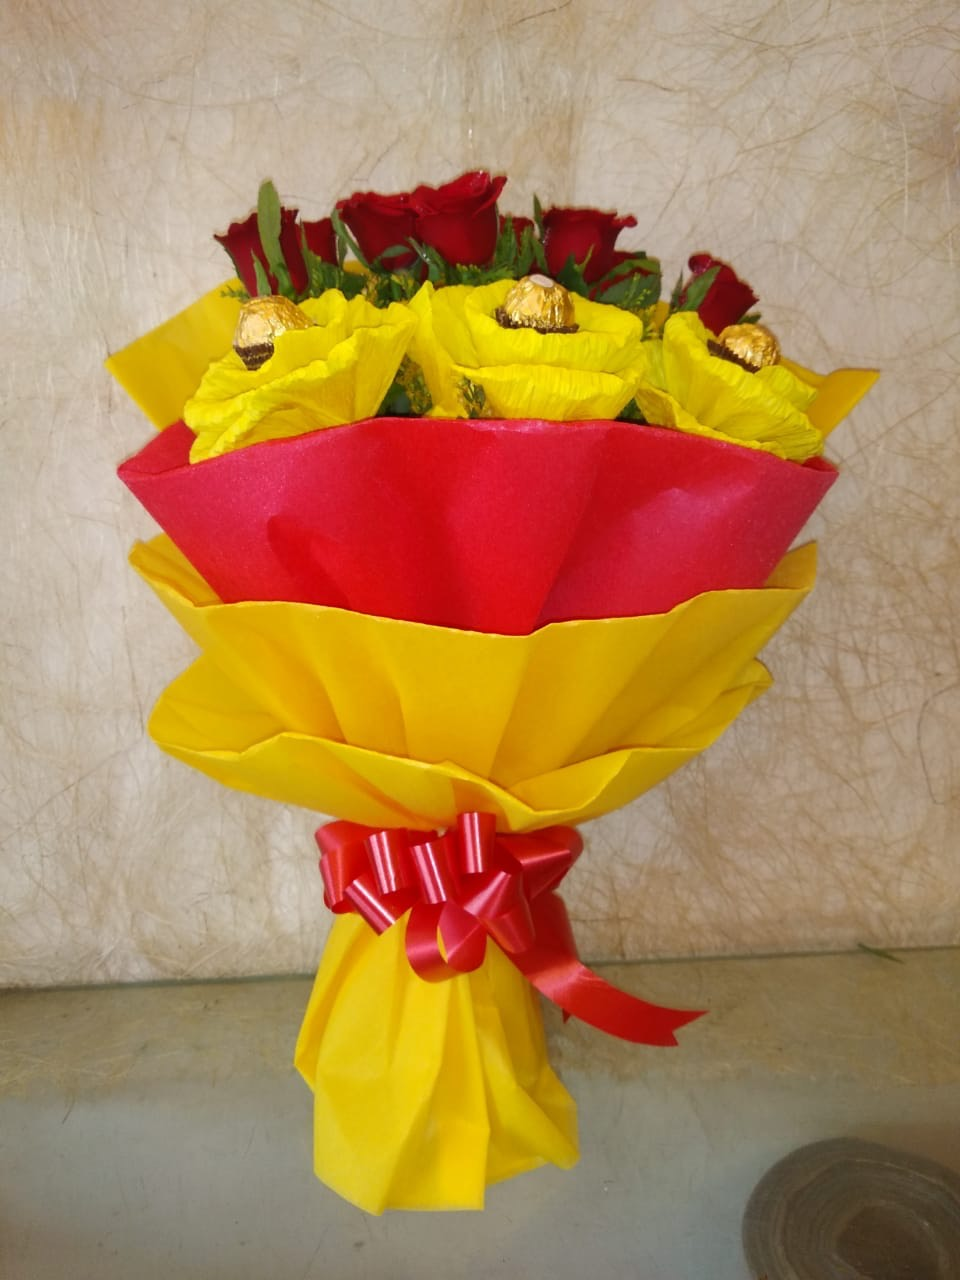 Flowers Delivery in Sector 6 GurgaonRed Roses Ferrero Rocher Bunch